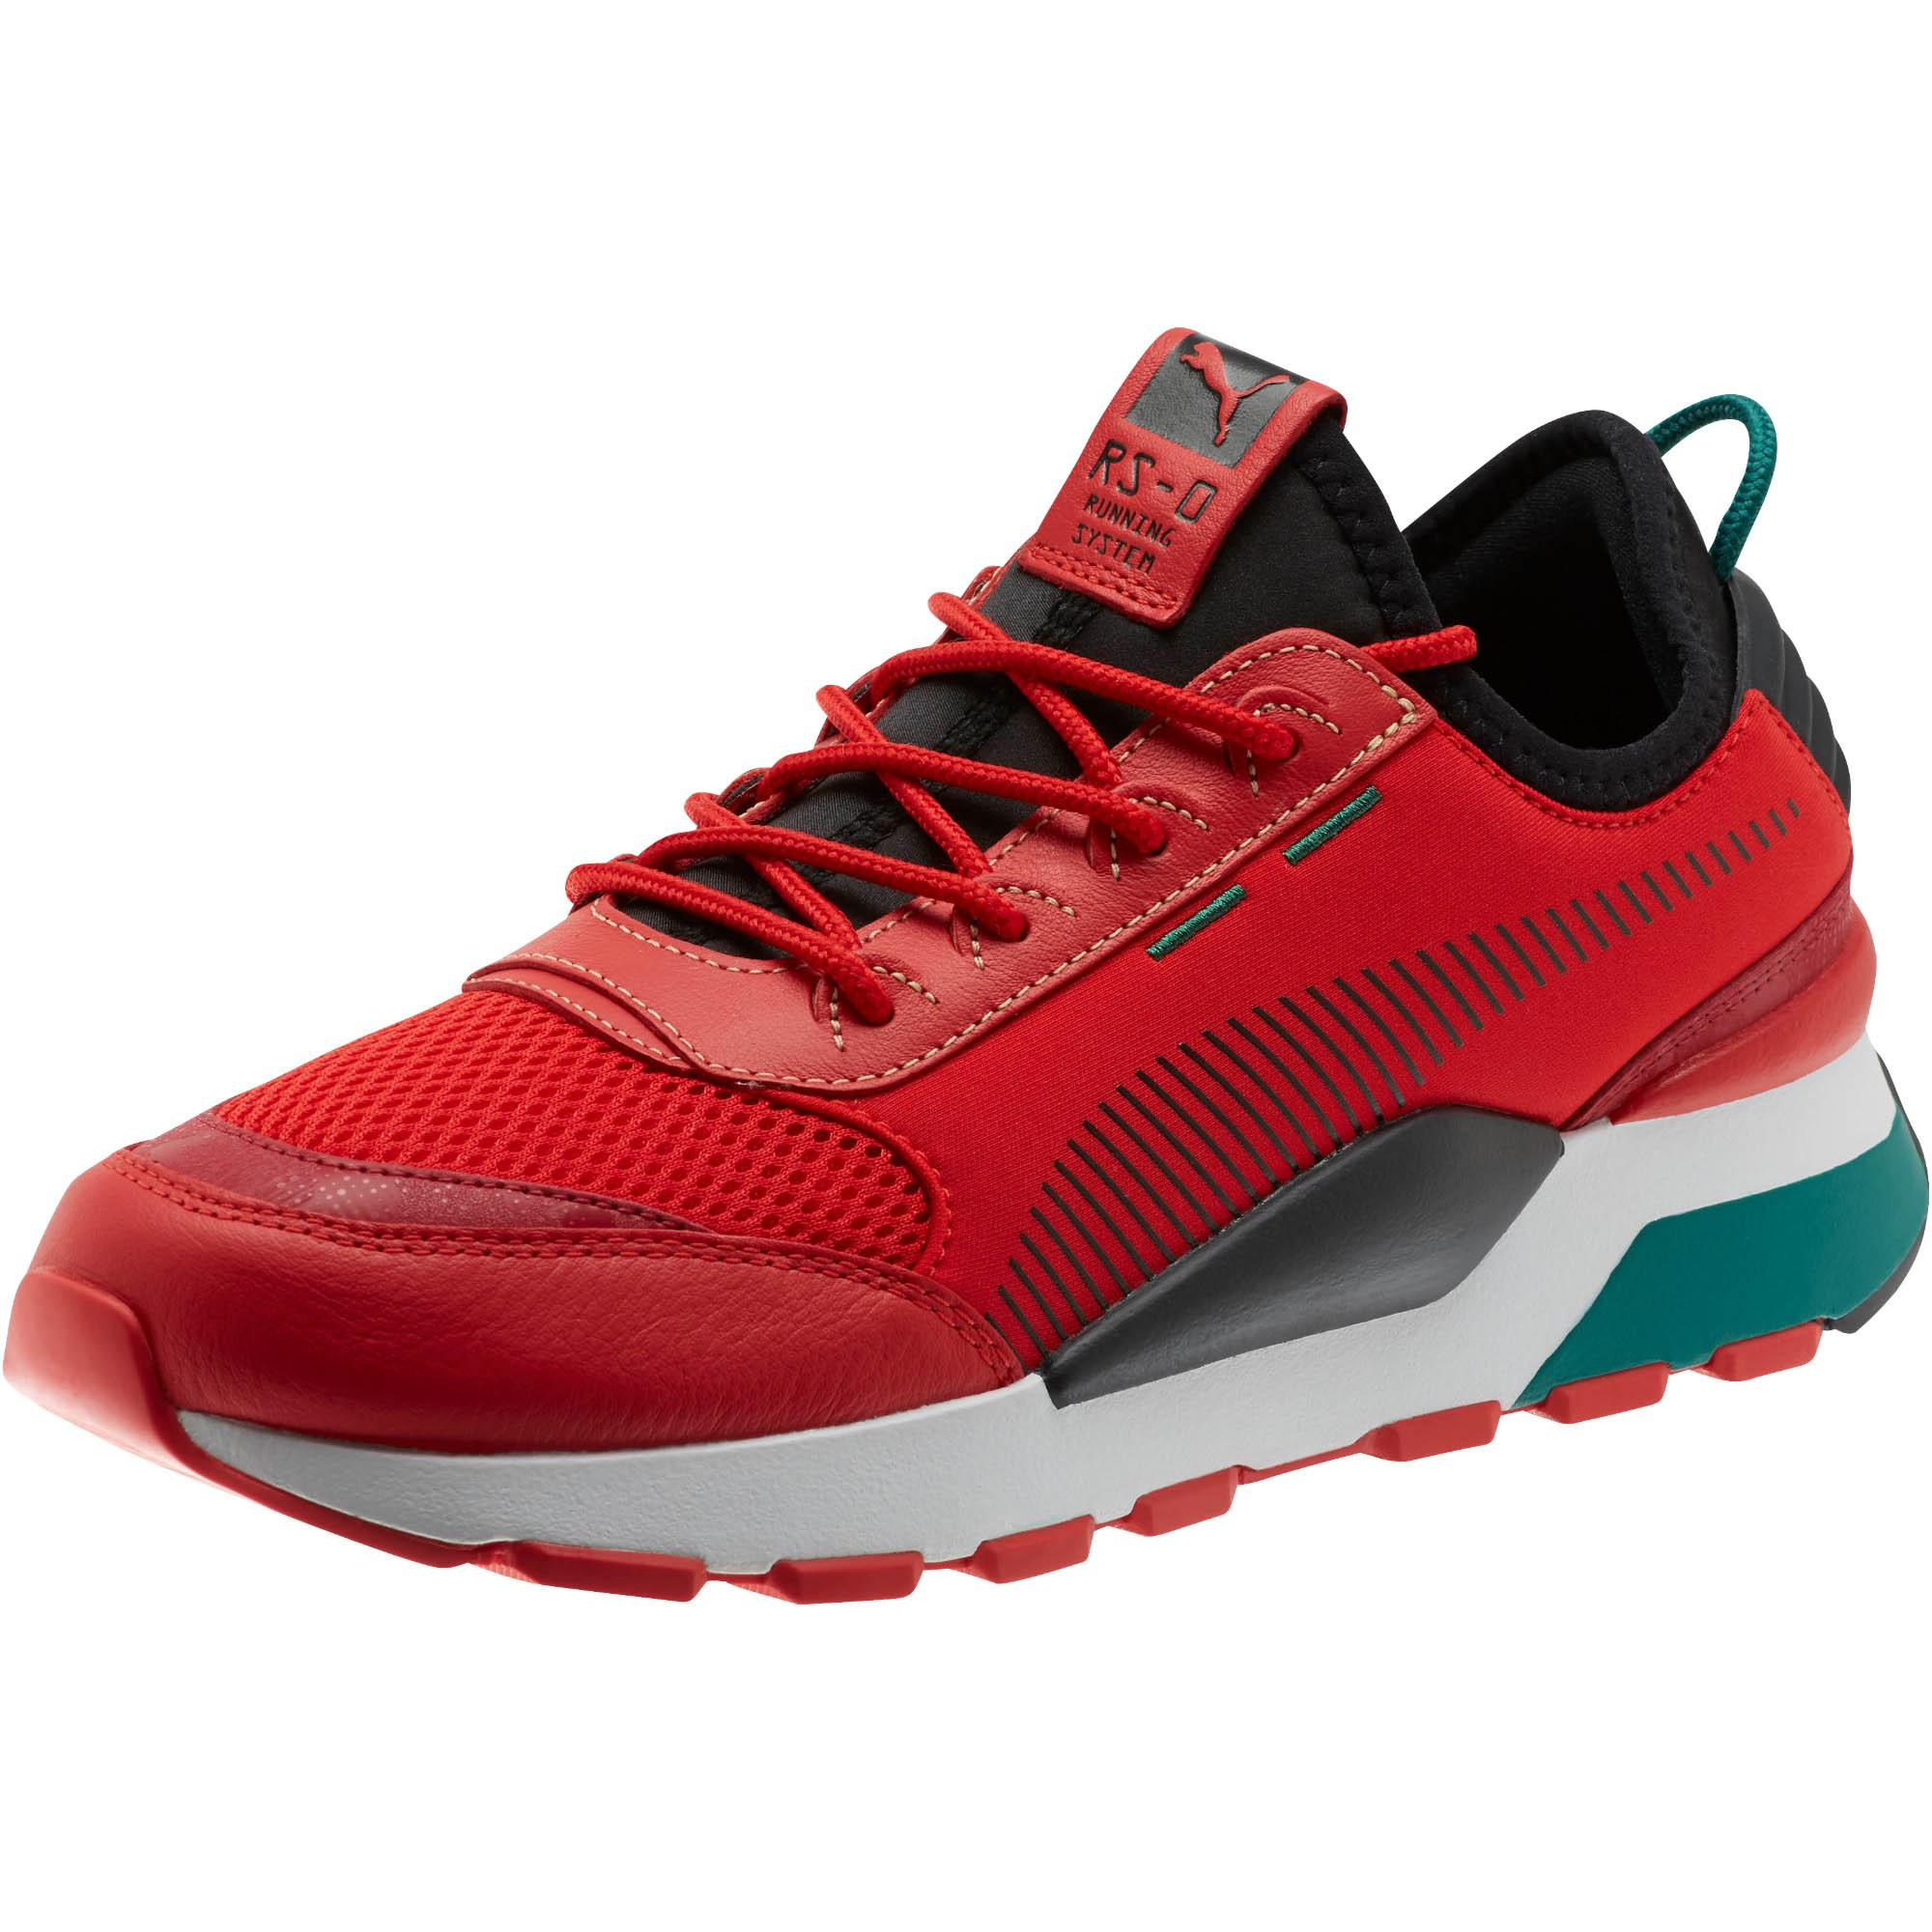 1be158eabb5 Lyst - PUMA Rs-0 Rm Sneakers in Red for Men